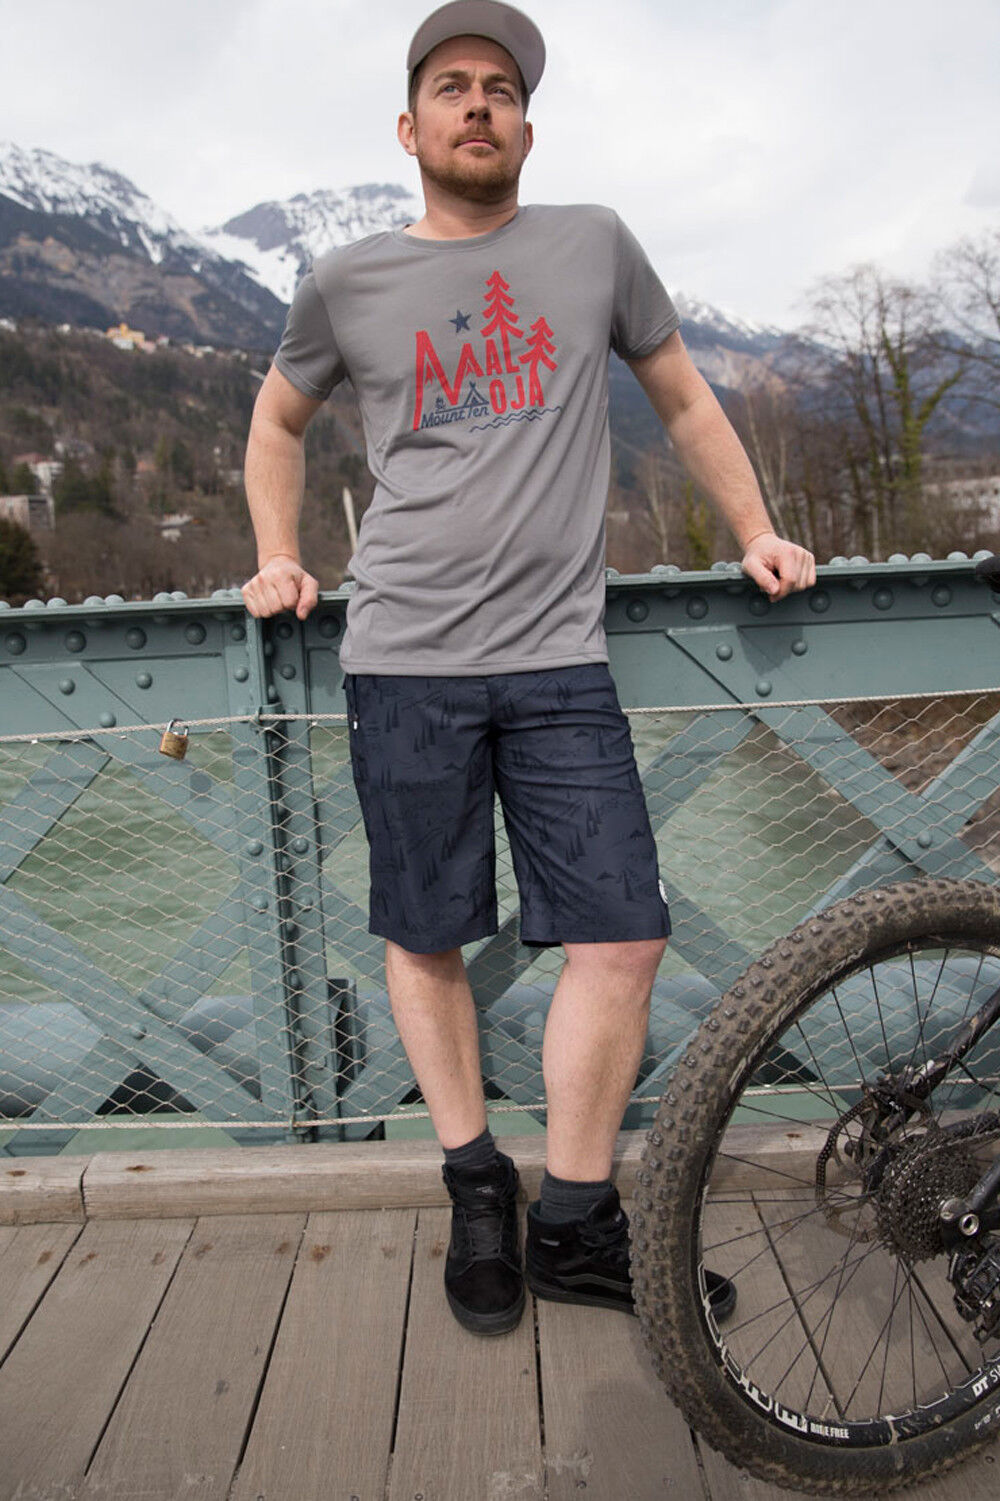 Maloja dunom. T-Shirt  Men's Sports Climbing Fitness Running Hiking  all goods are specials